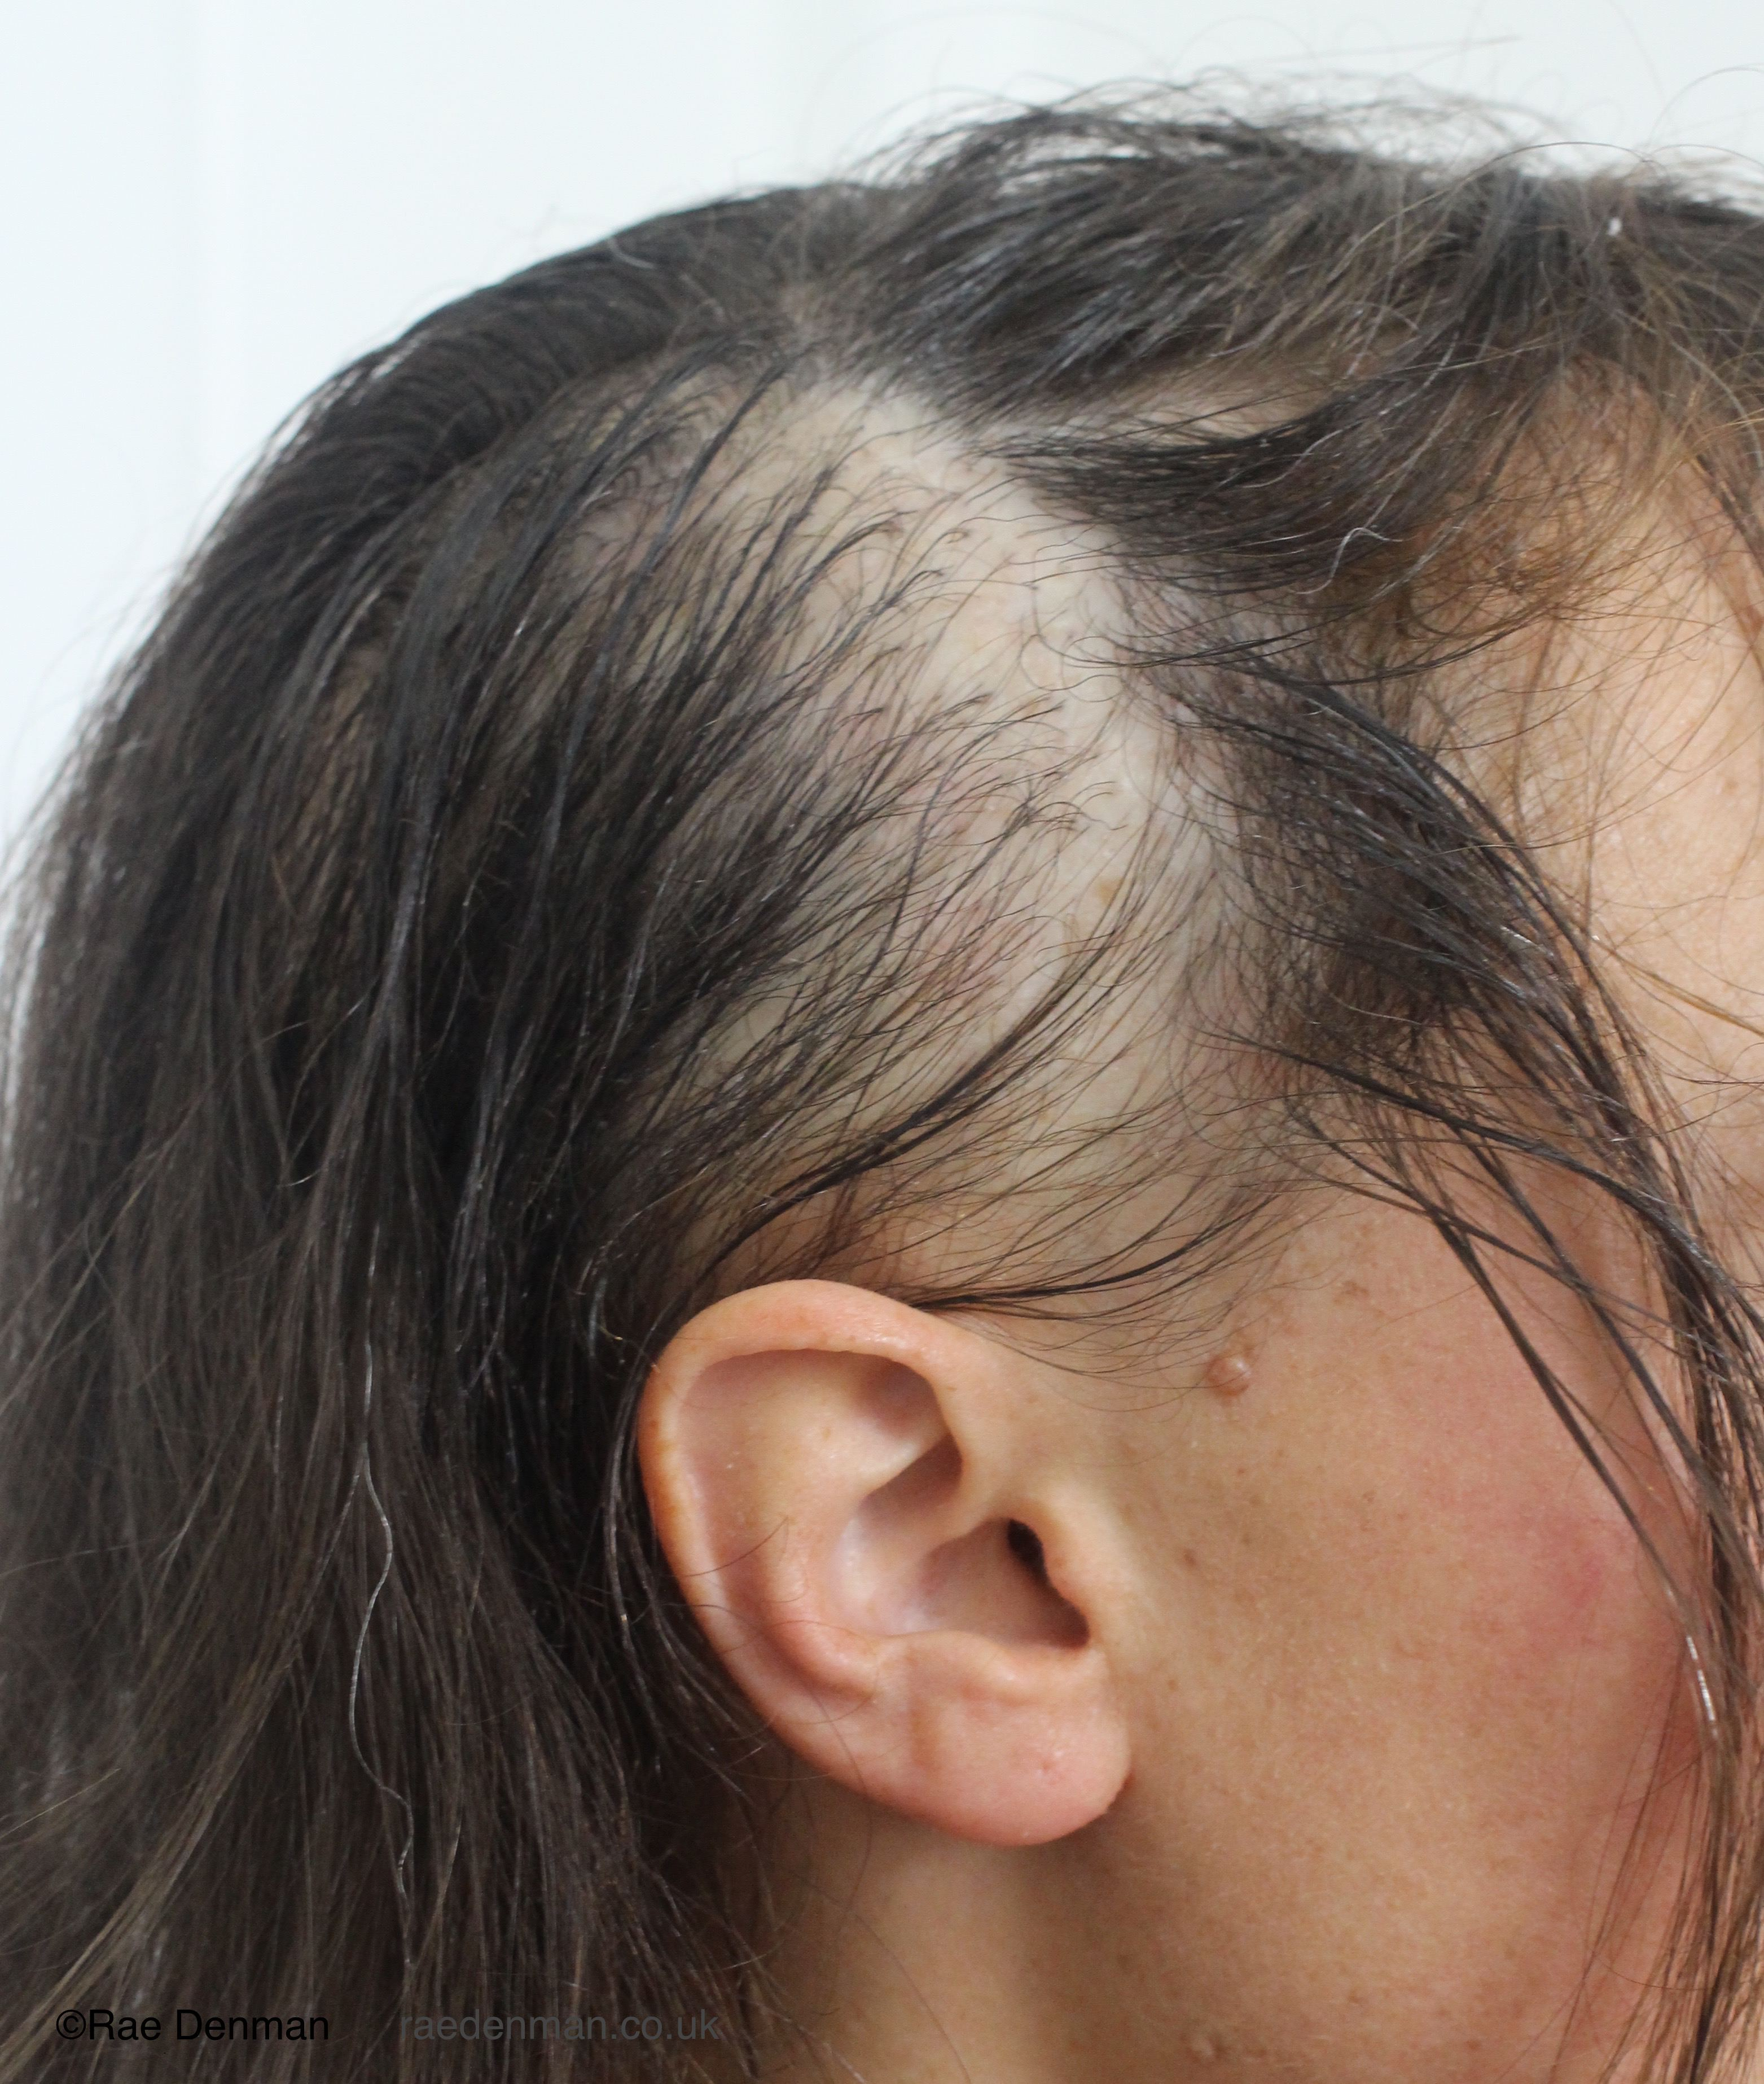 Patchiness due to thin hair